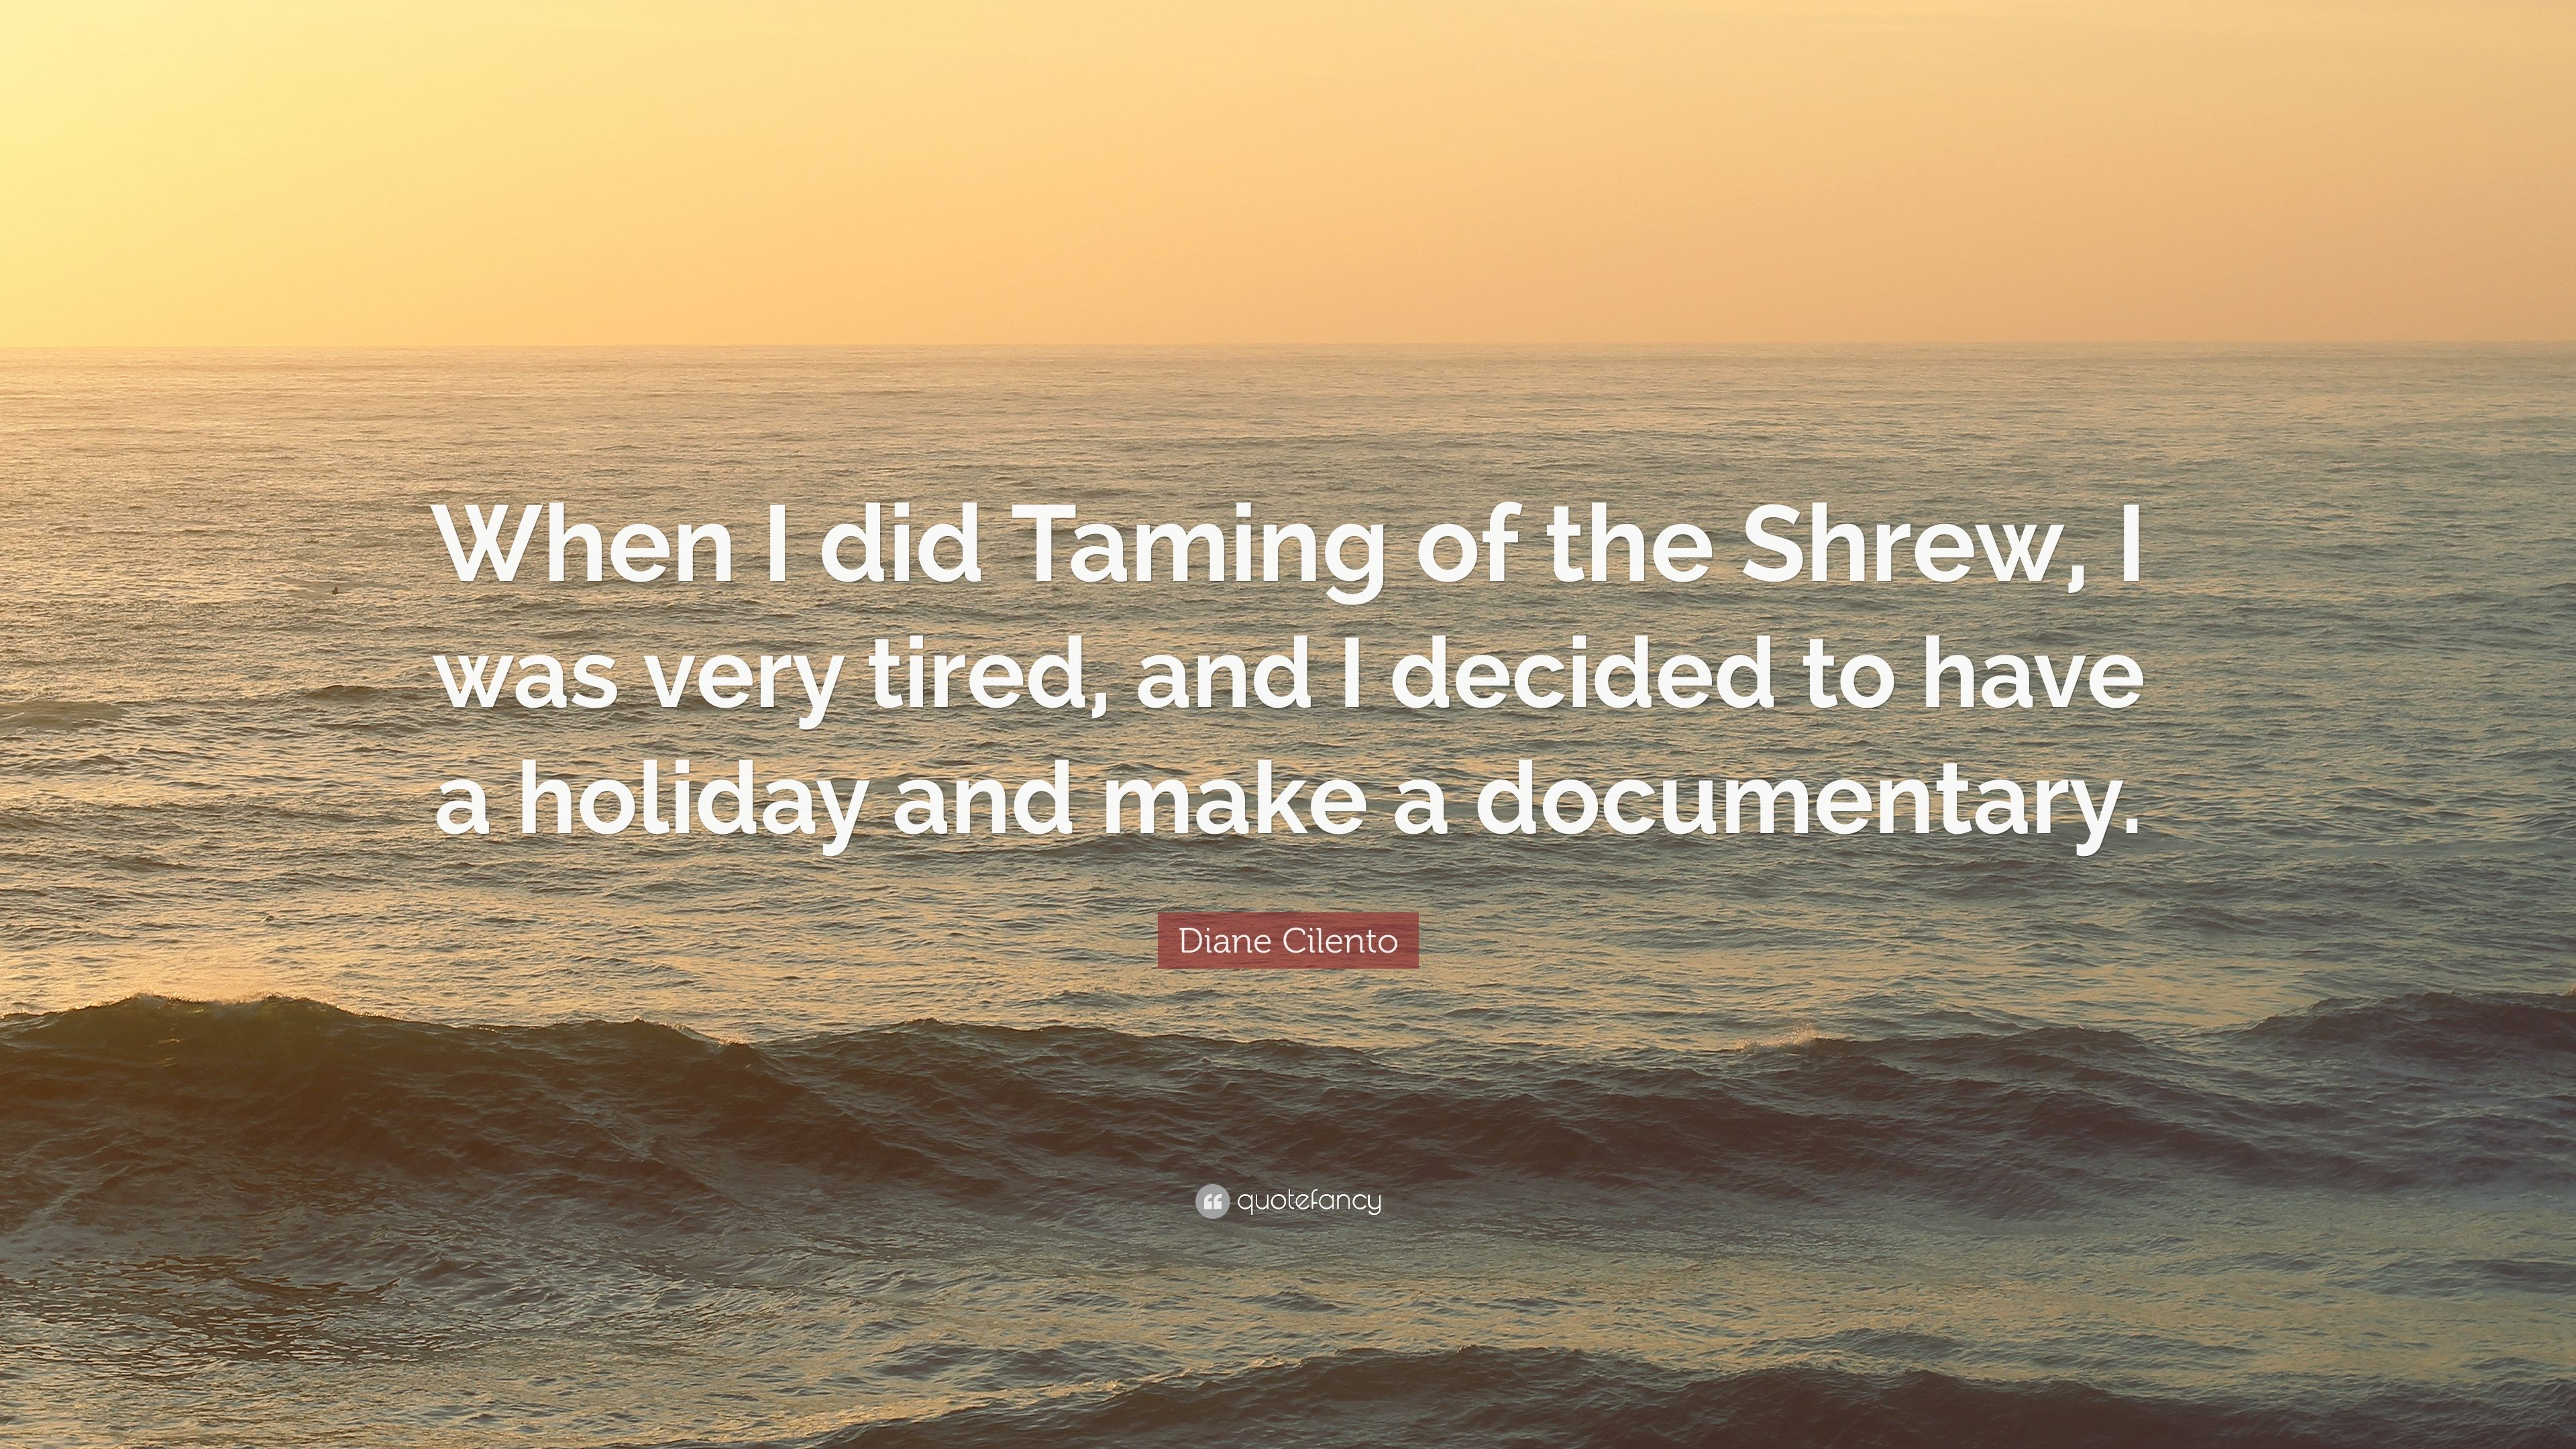 taming the shrew quotes